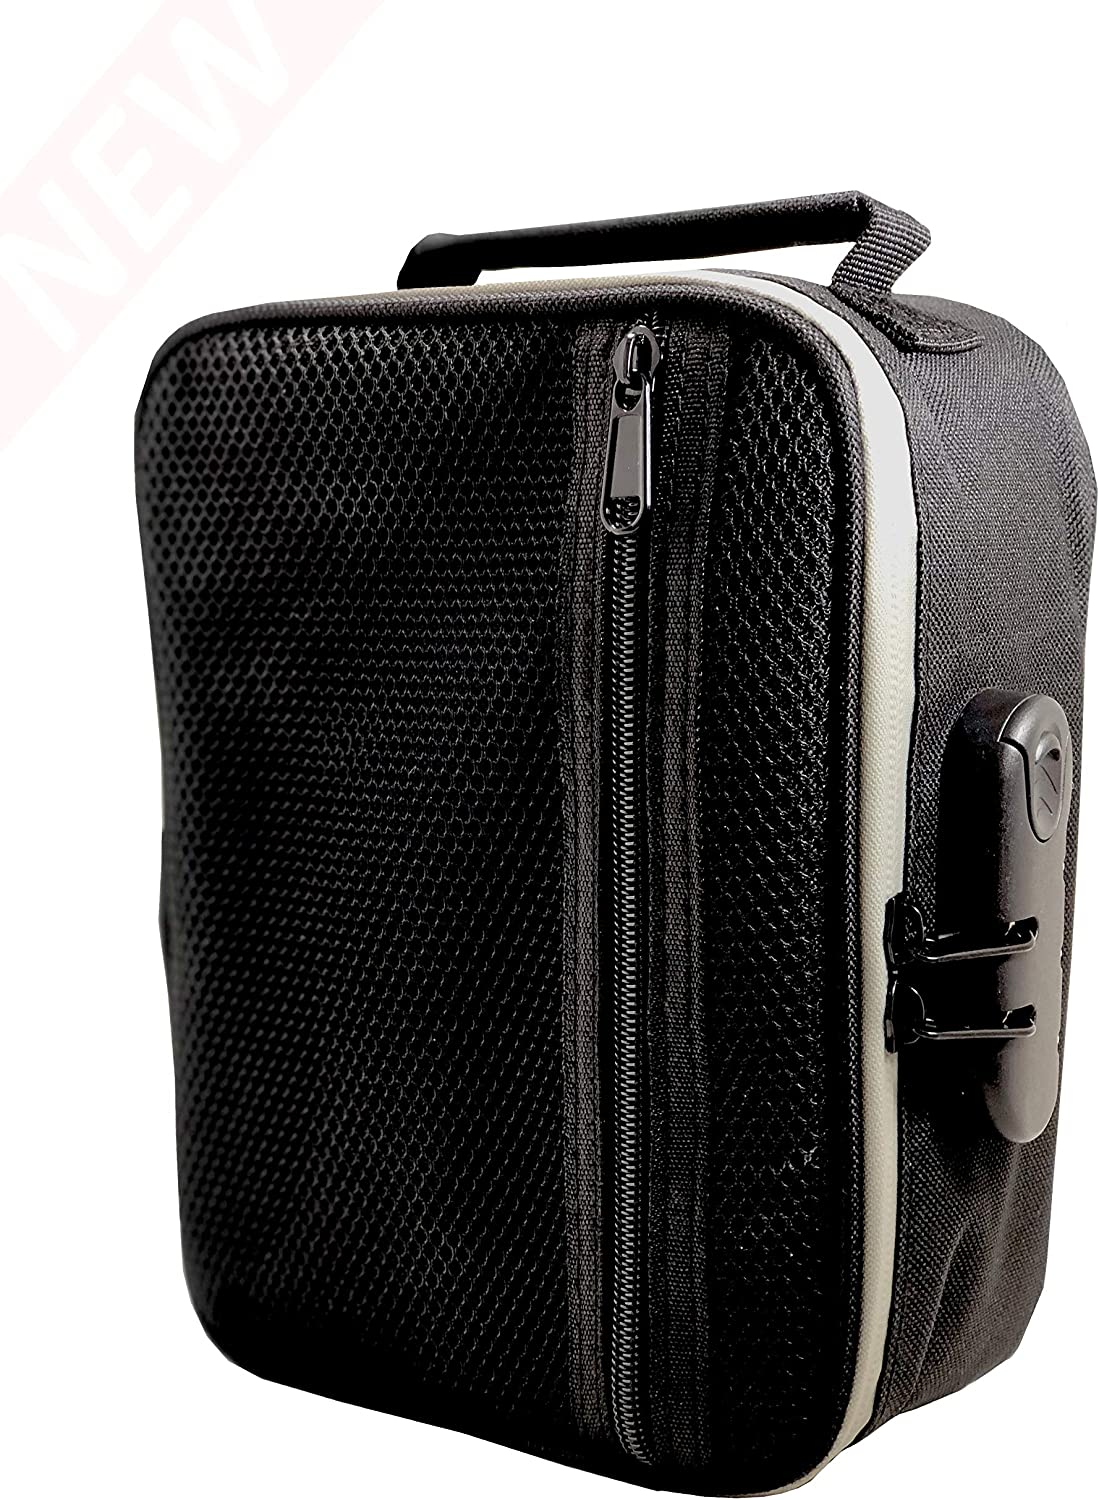 Smell Proof Bag - Odor Concealing - Protect Your Items with Built-in Combo Lock